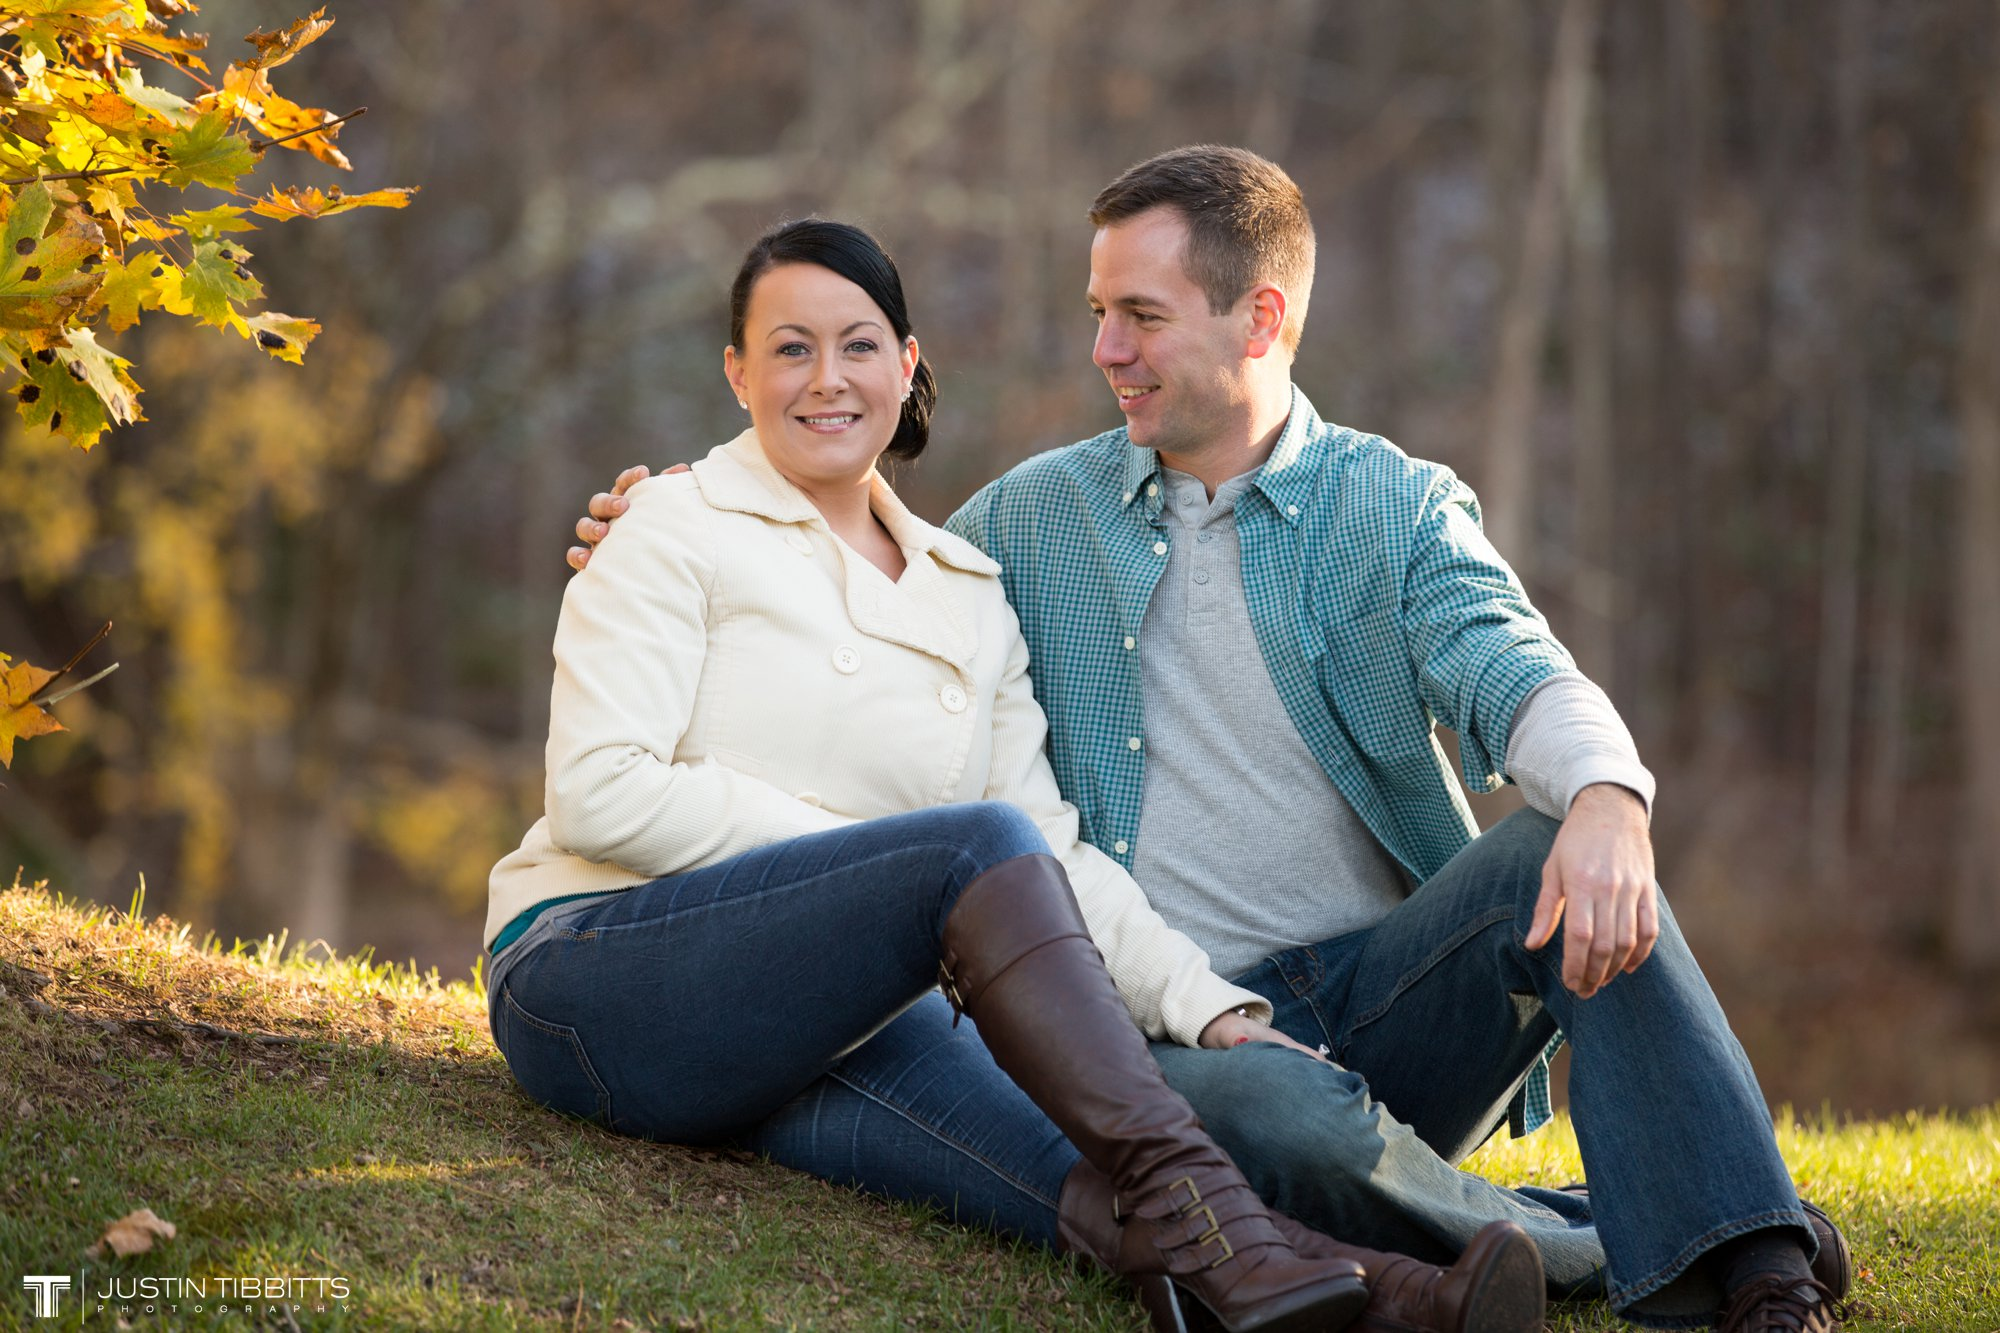 Justin Tibbitts Photography Kristie and Gregs Windham Mountain Resort Engagement Shoot-85